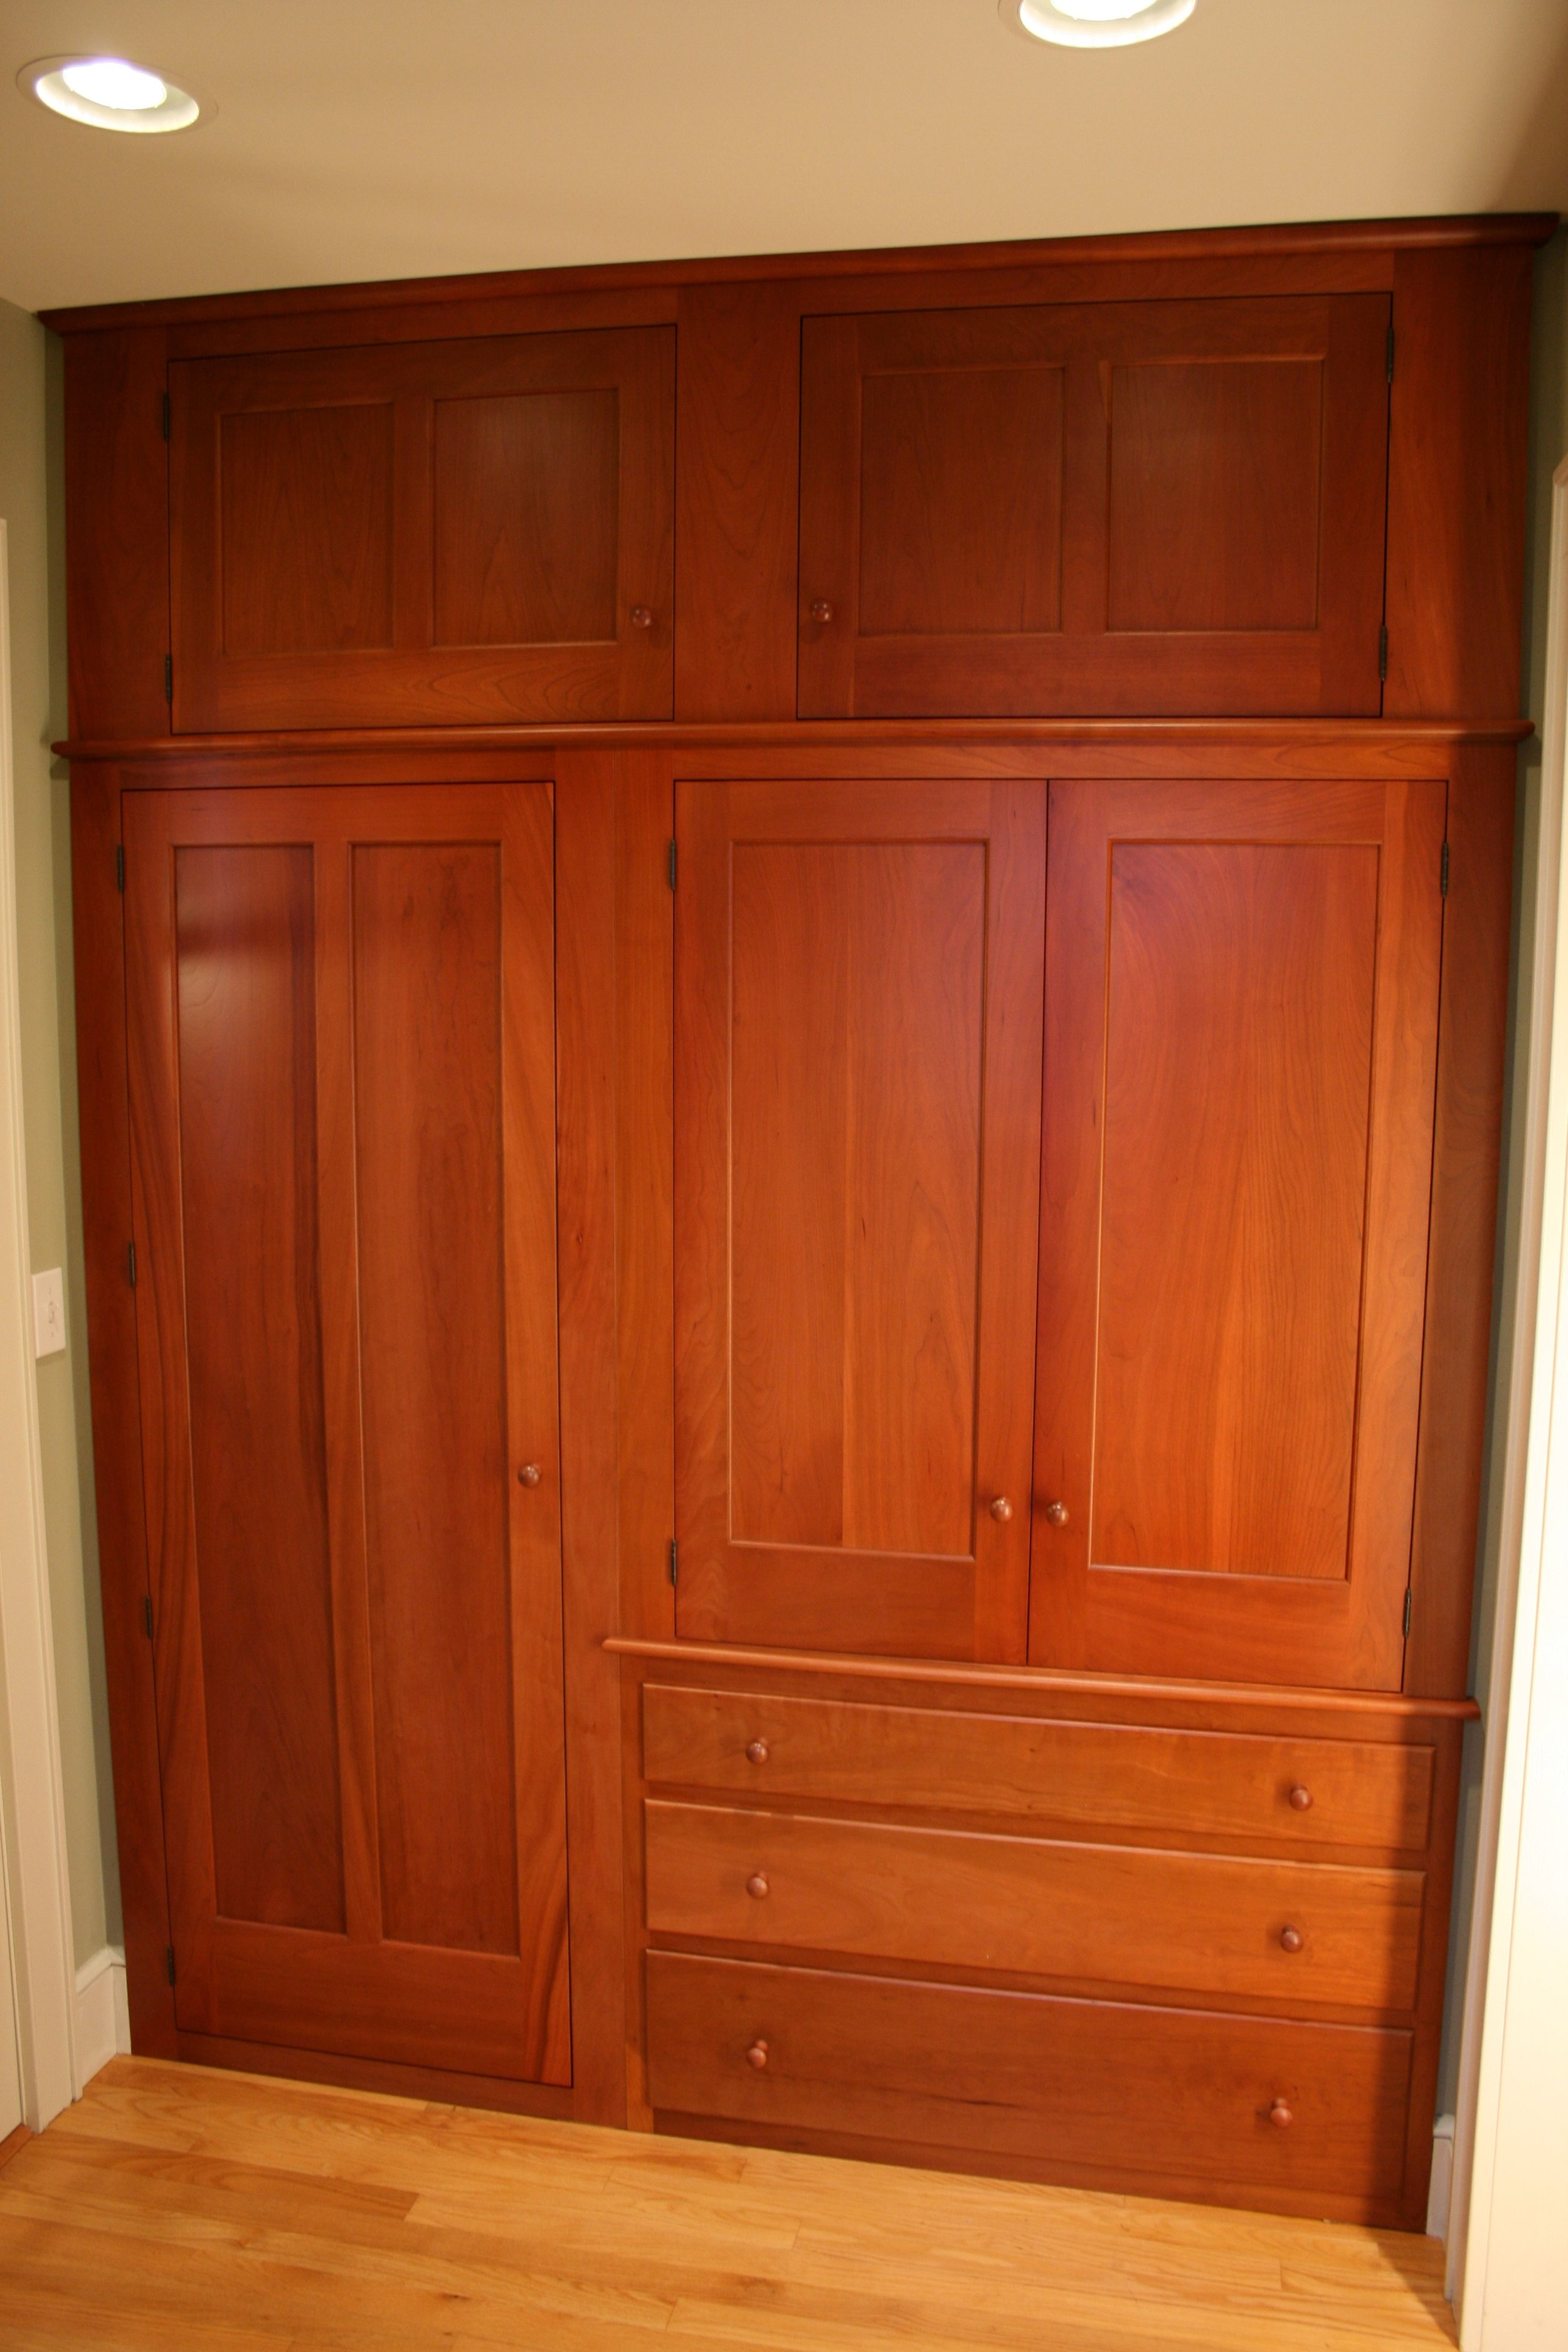 His:Hers Built-in Closets 1.jpg